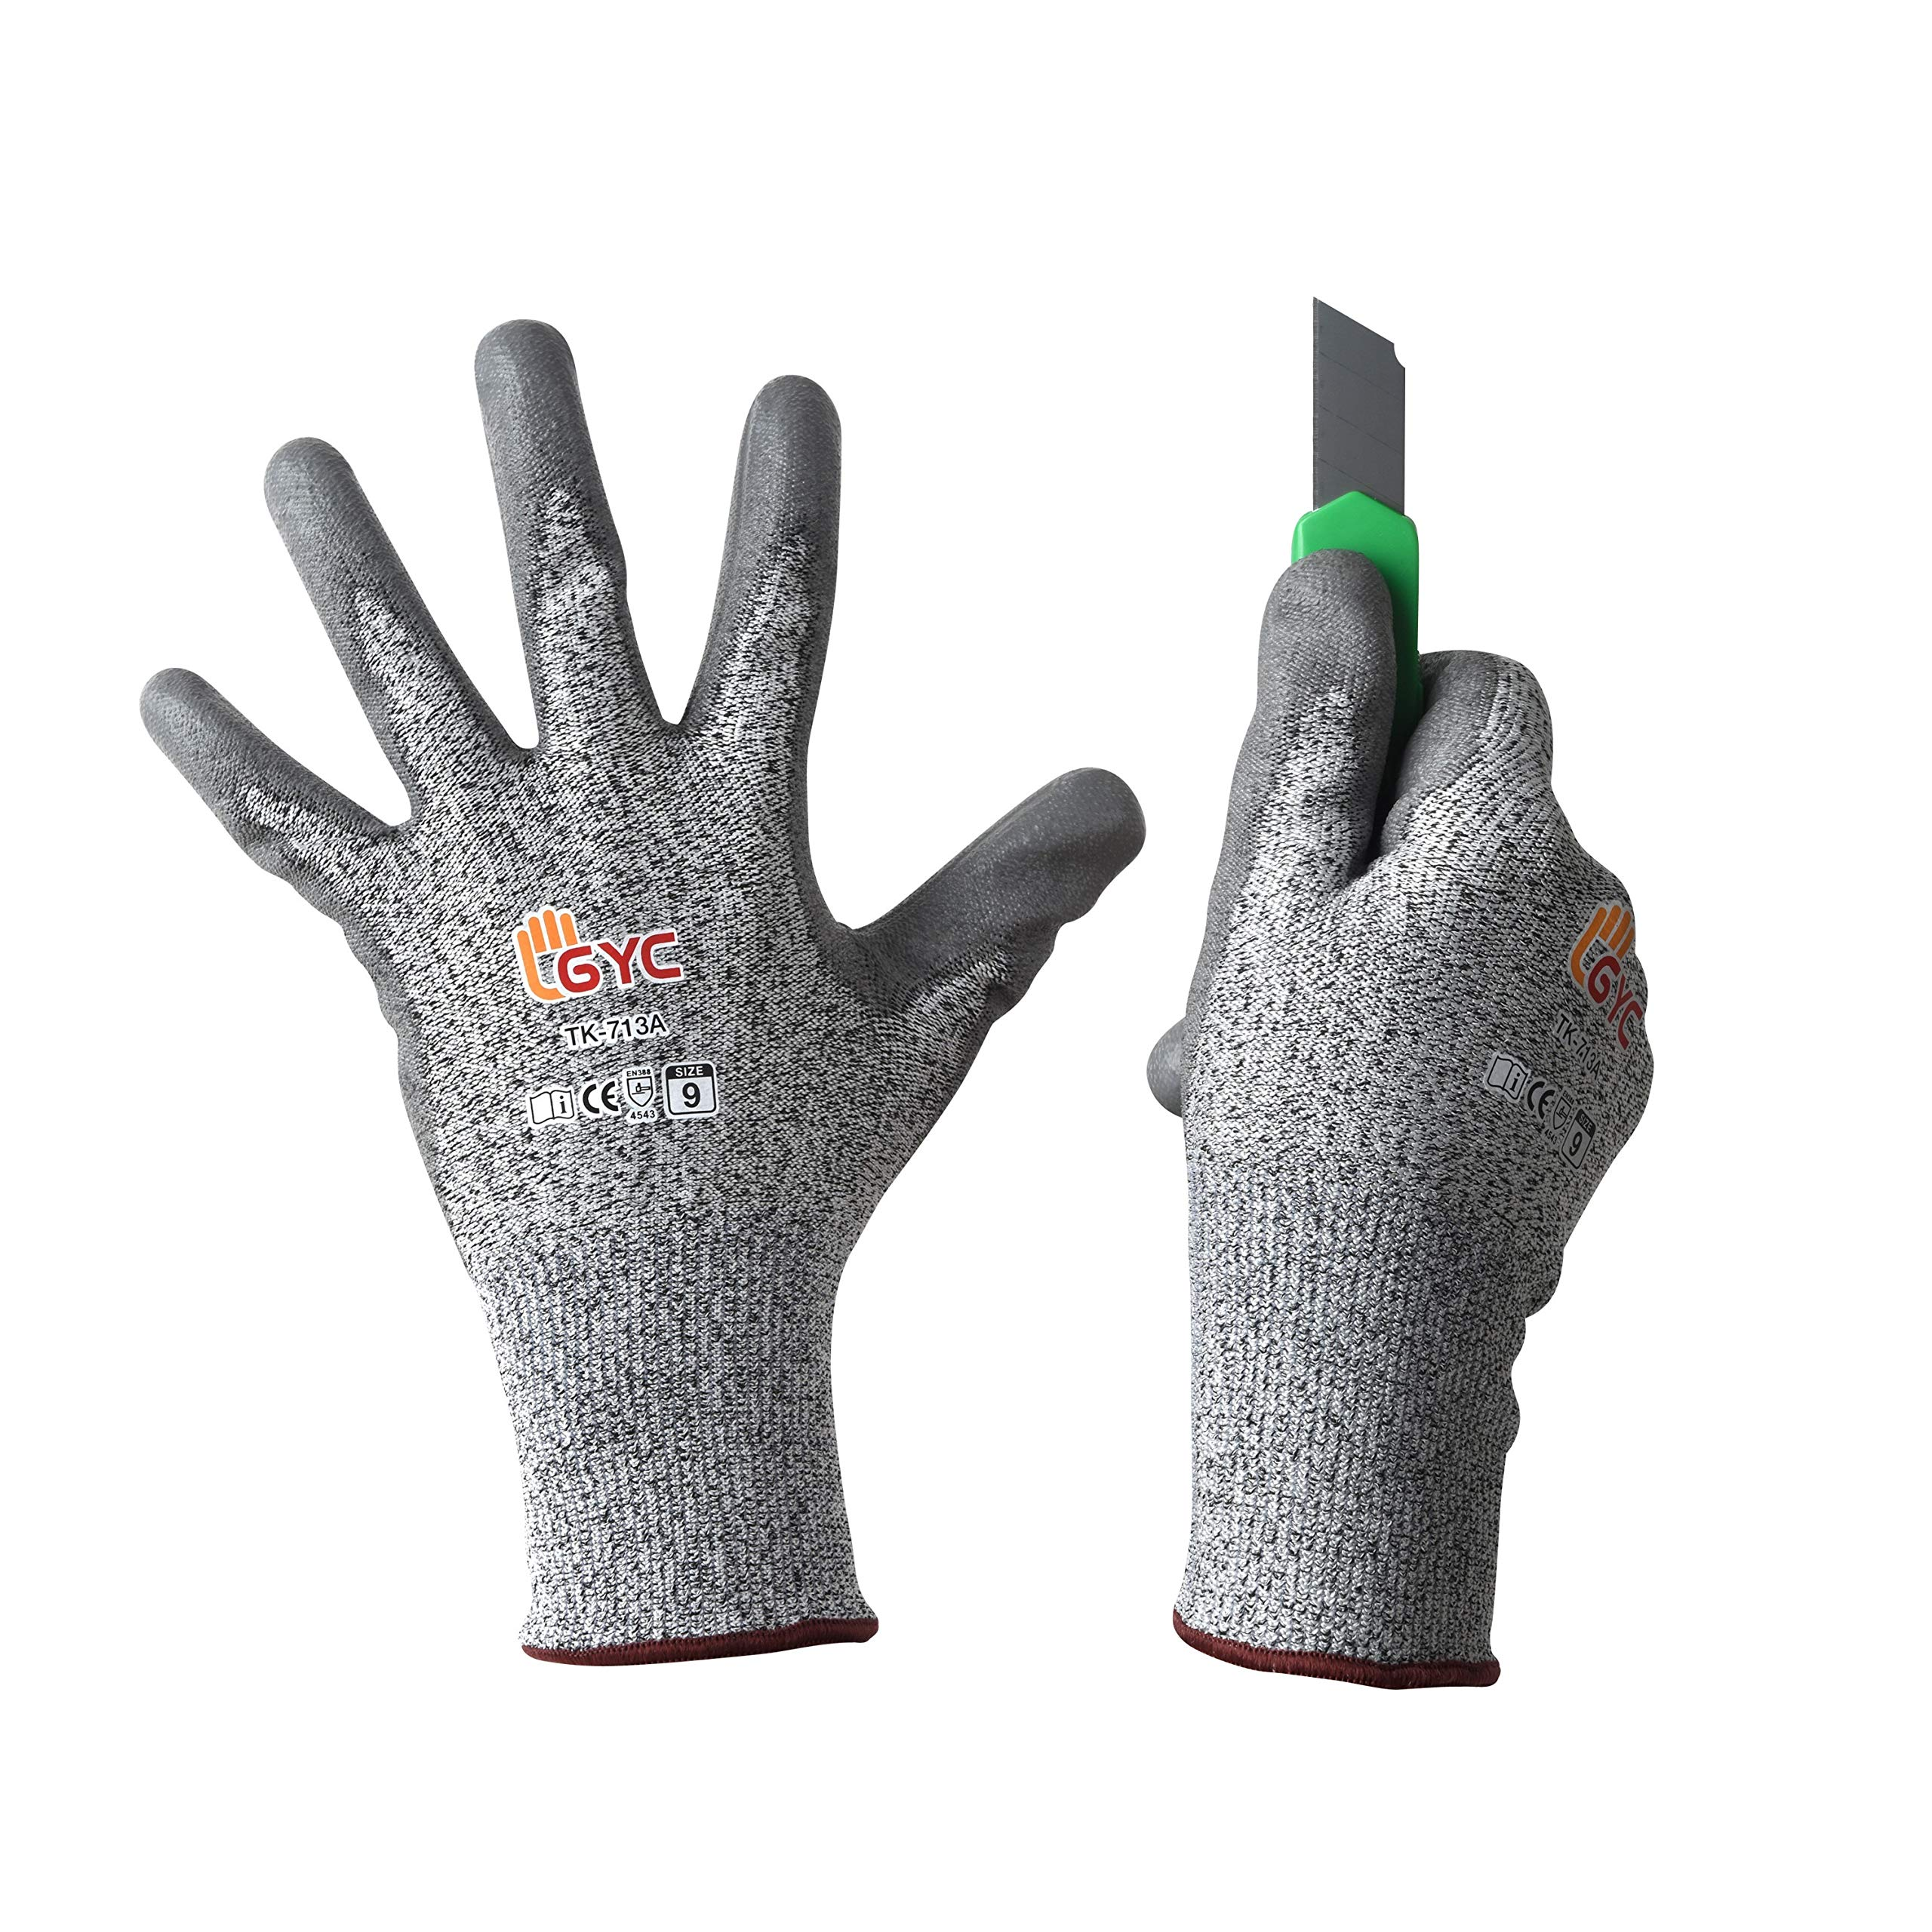 GYC Gloves, Cut Resistant Gloves Safety Work Gloves - Level 5 Cut Protection, 10 Pairs Pack - High Performance Dexterity & Breathability, Comfortable (TK-713A/Size 9 - LARGE, 10 Pairs)